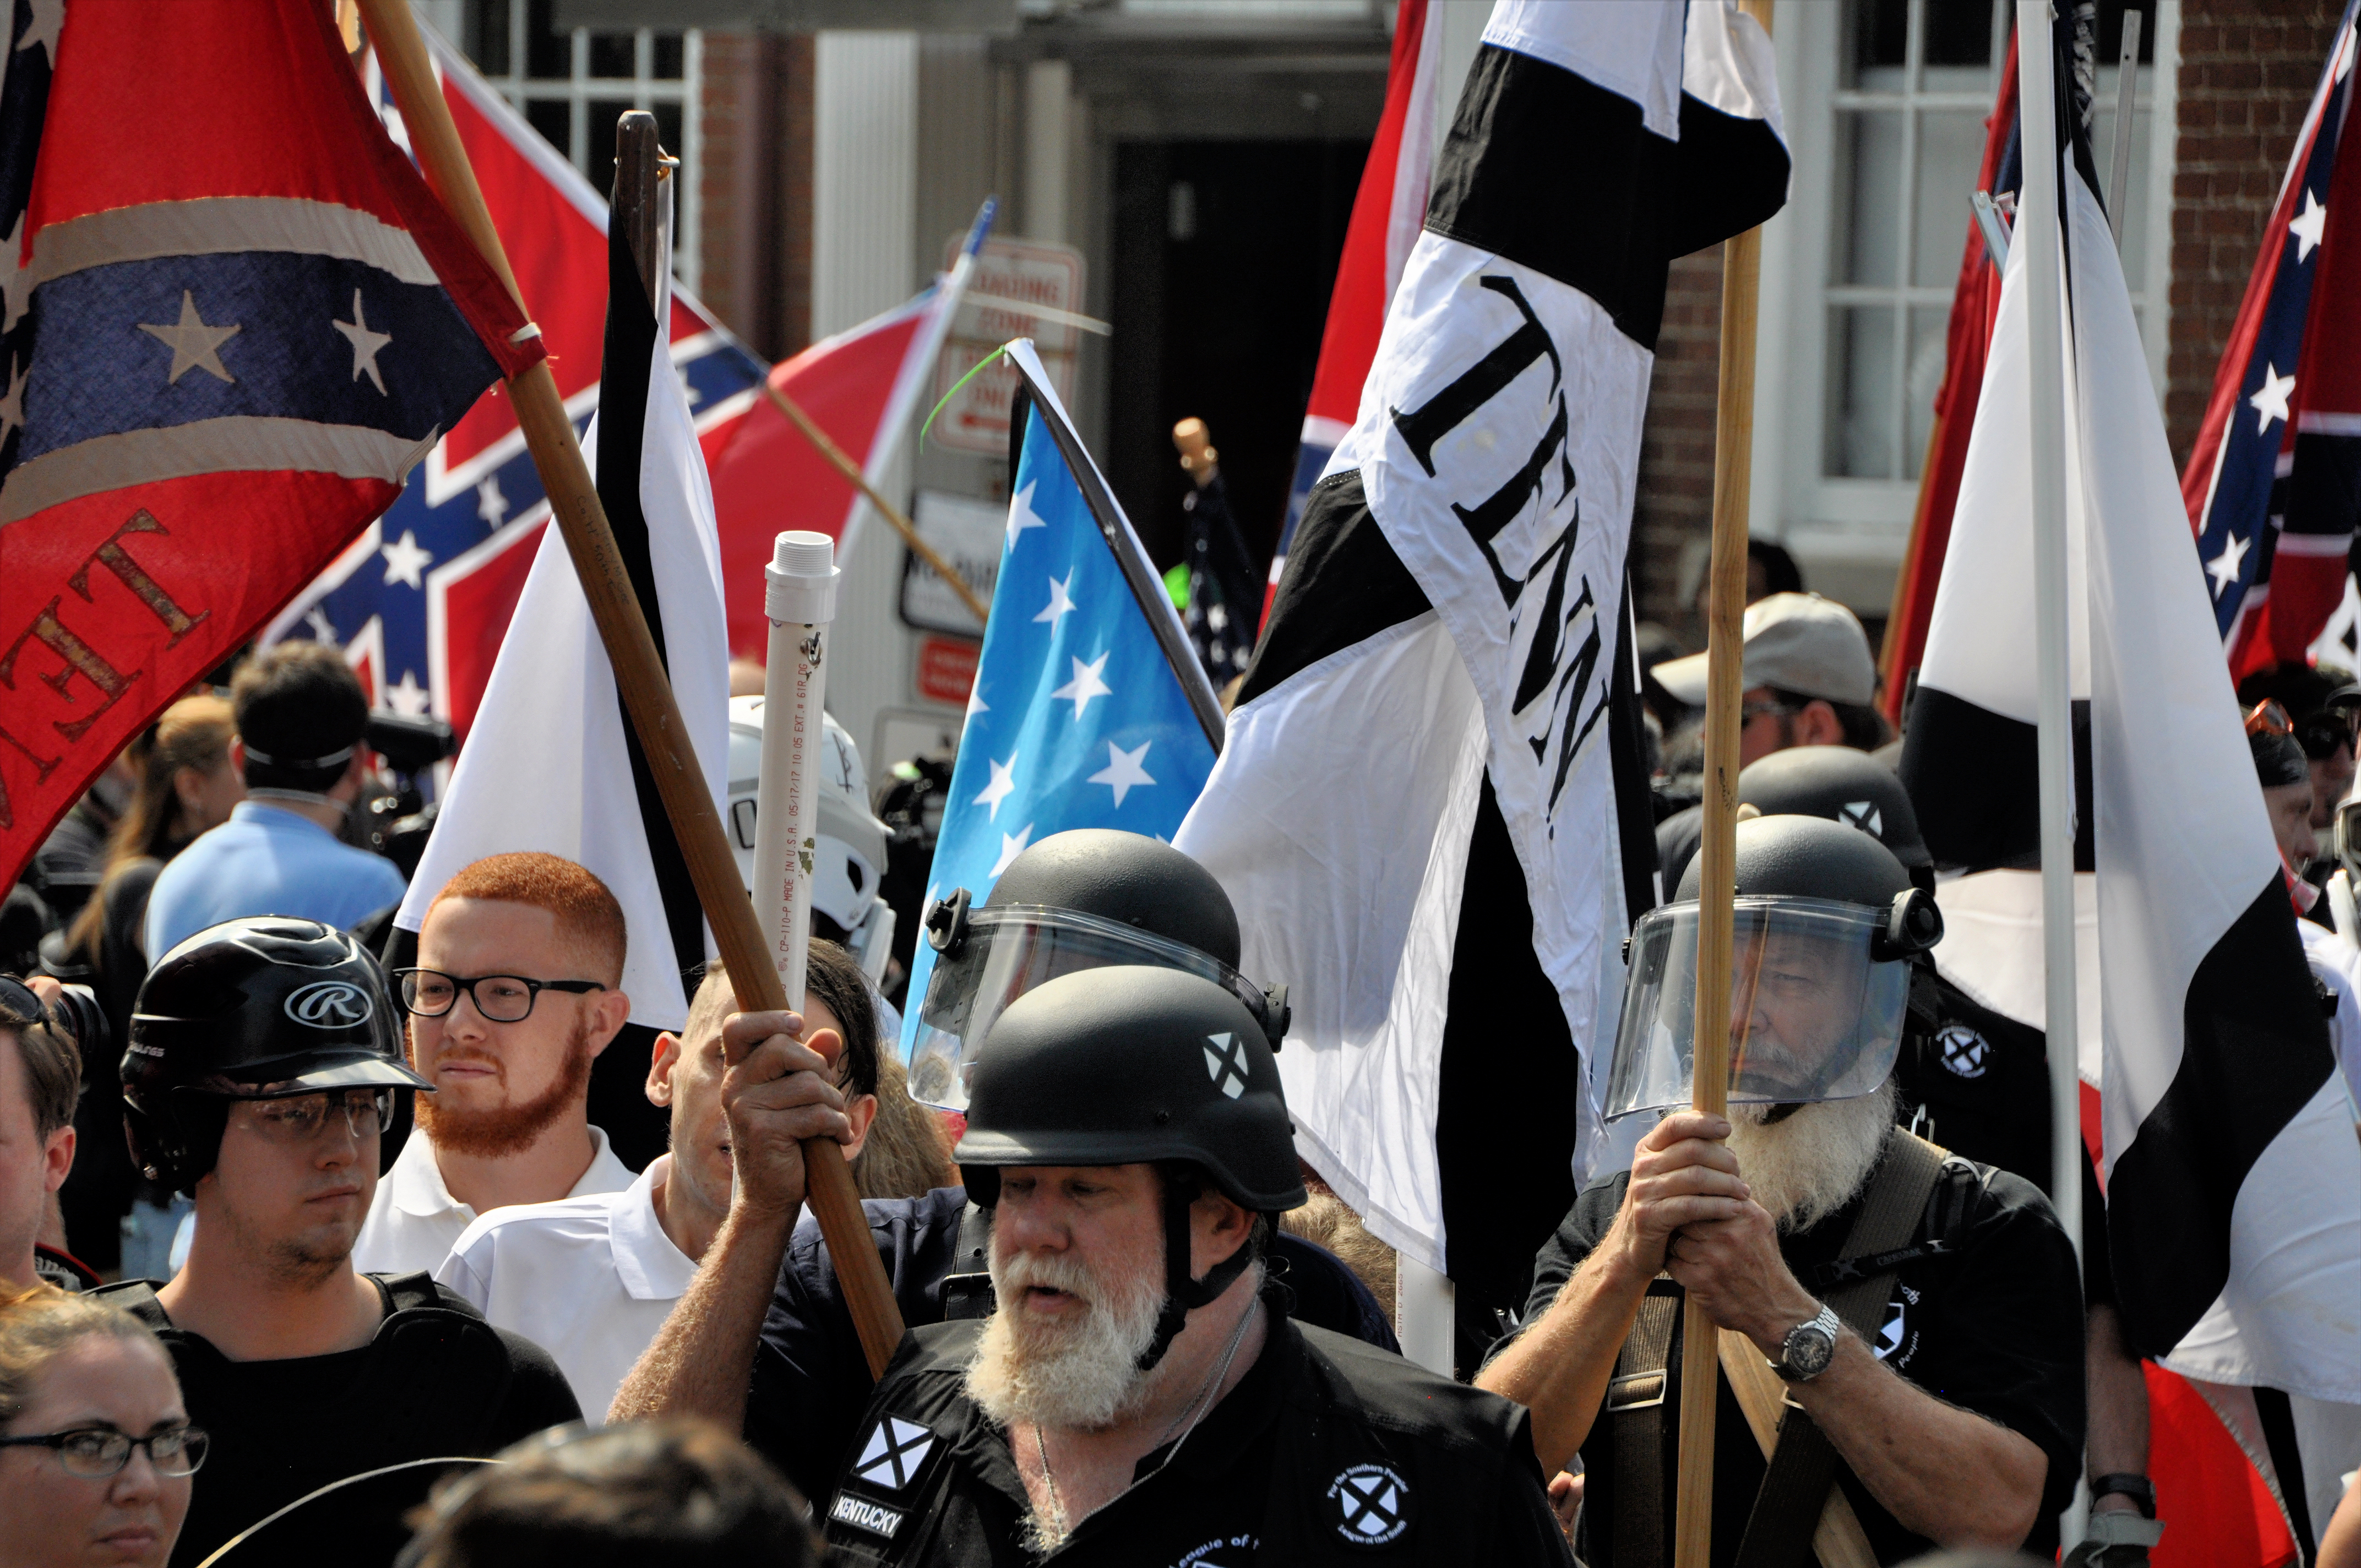 CHARLOTTESVILLE, VA - August 12, 2017: White nationalists and counter protesters clash in during a rally that turned violent resulting in the death of one and multiple injuries. SHUTTERSTOCK/ Kim Kelley-Wagner